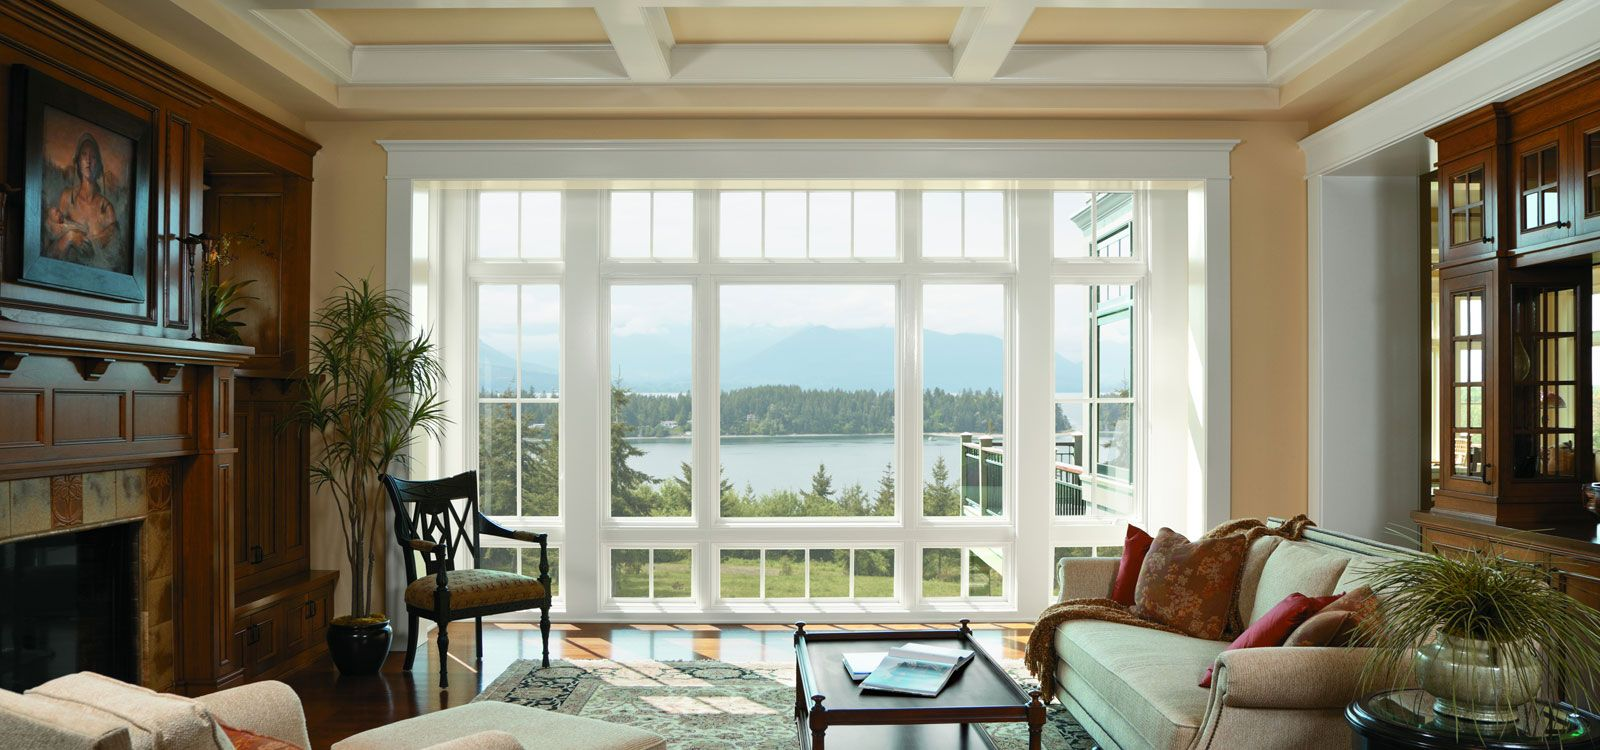 Andersen Replacement Windows At The Home Depot  Breathtaking Mesmerizing Living Room Window Design Ideas Inspiration